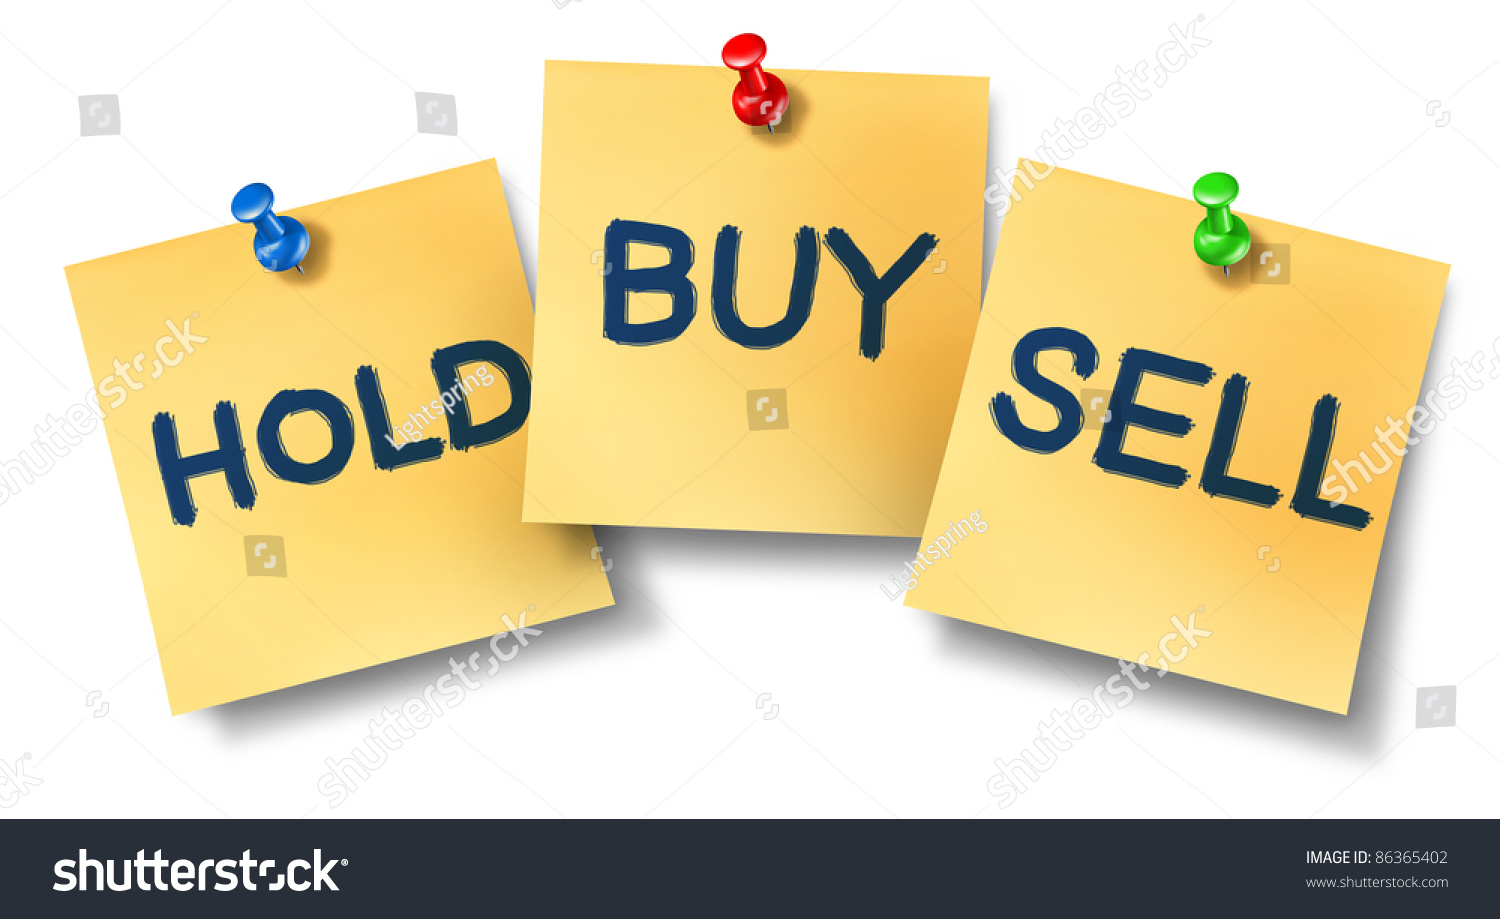 Buy Sell Hold Office Notes Representing The Stock Market Exchange Trading  Concept For Wall Street Brokers